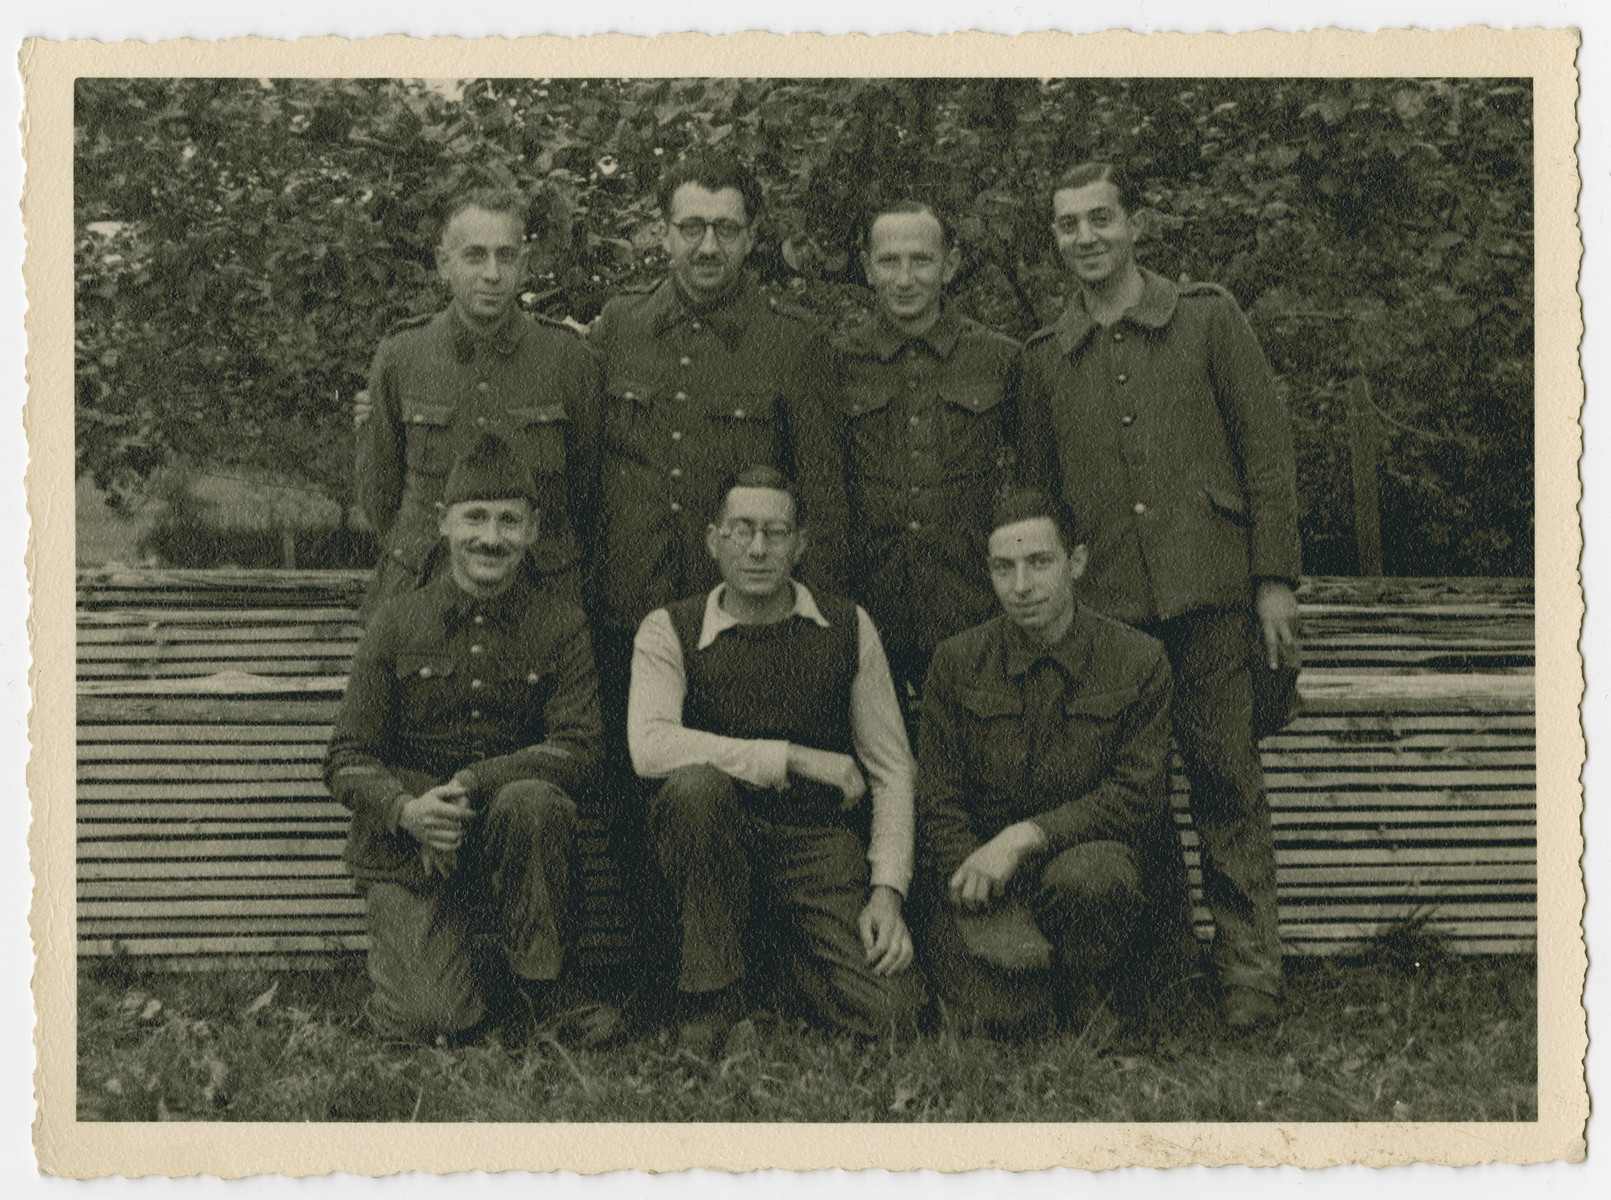 Group portrait of prisoners in Stalag 10 C.  Piictured in the back row (left to right) are Arnold Silberfeld, Leopold Guttman, and Henry Kahn.  Pictured in the front row (left to right) are Jean-Pierre Mayer-Astruc, Alexis Goldschmidt, and [unidentified].